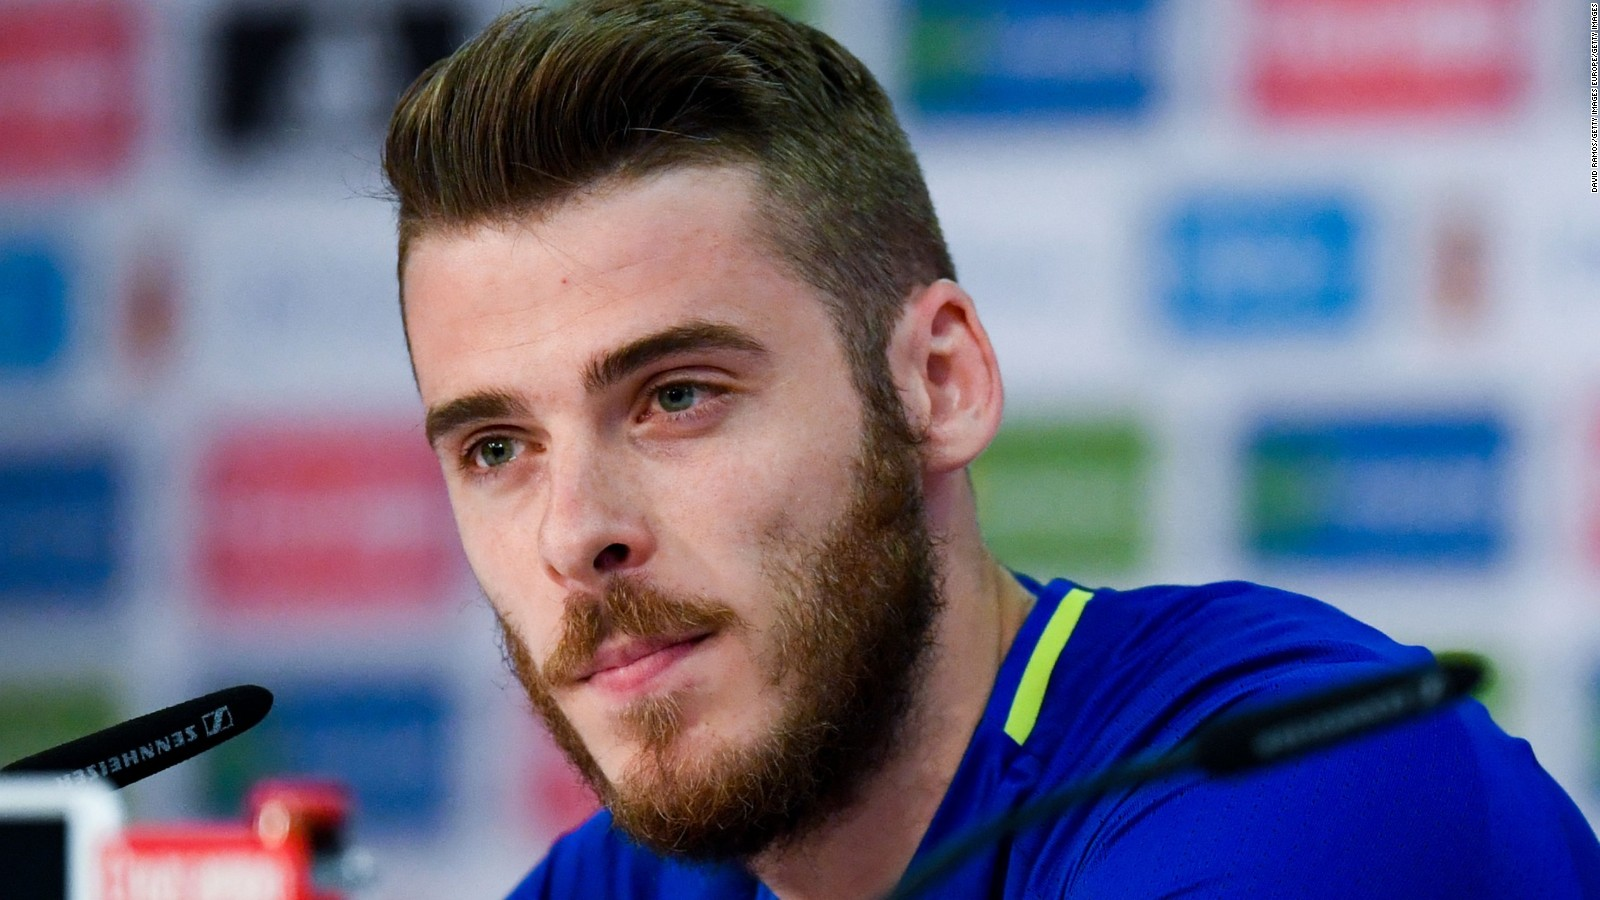 David de Gea denies party claims CNN